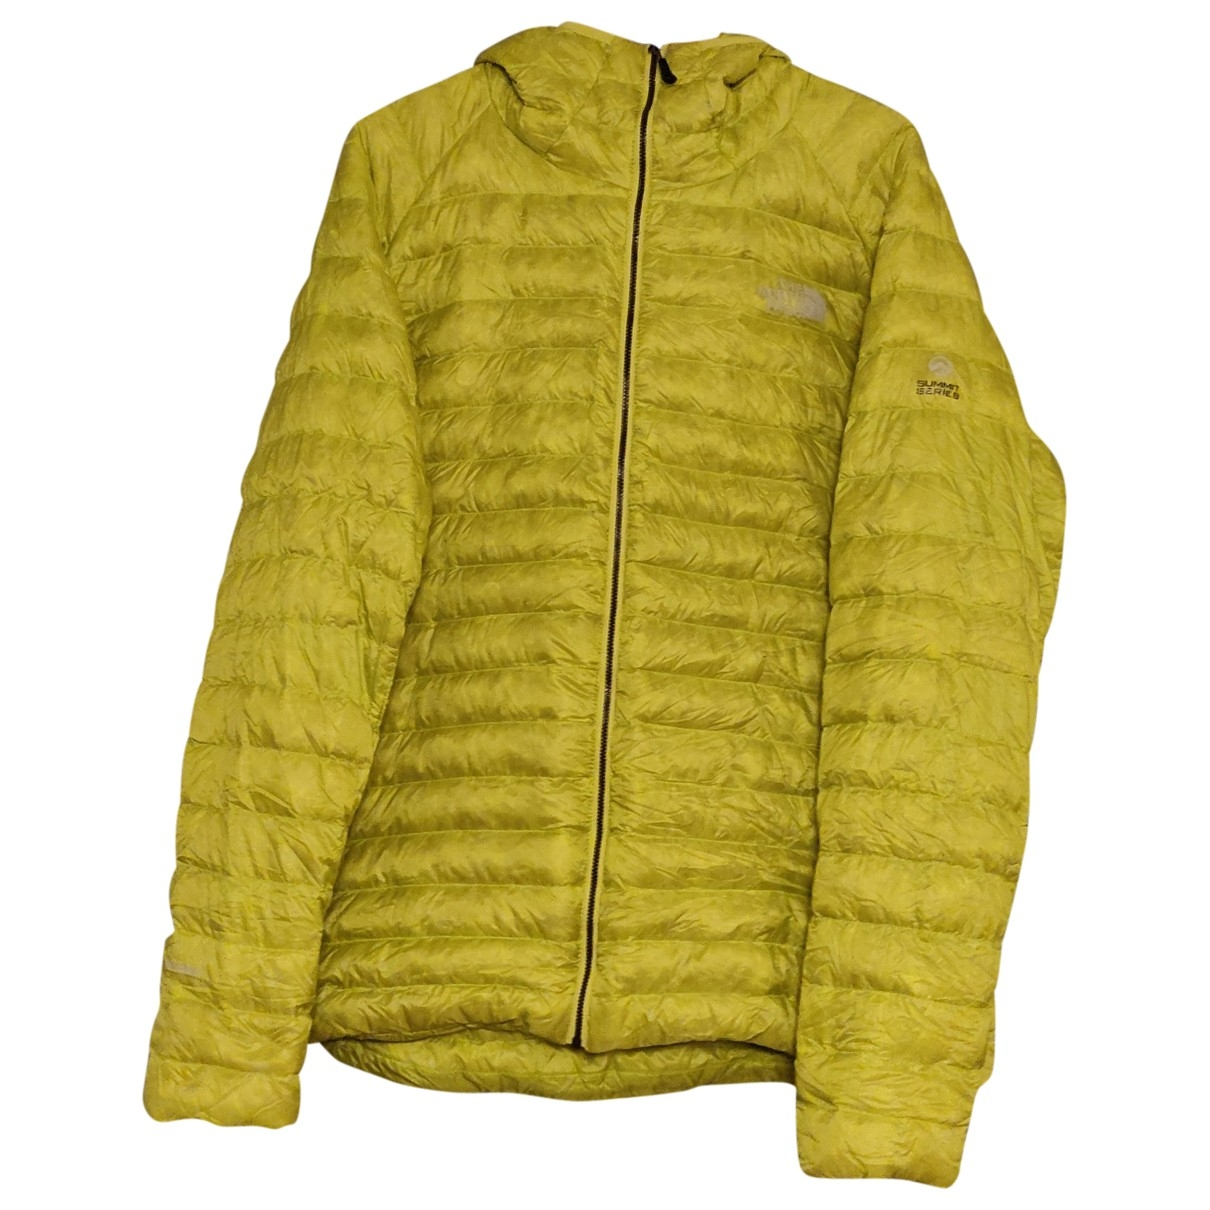 The North Face \N Green jacket  for Men XL International